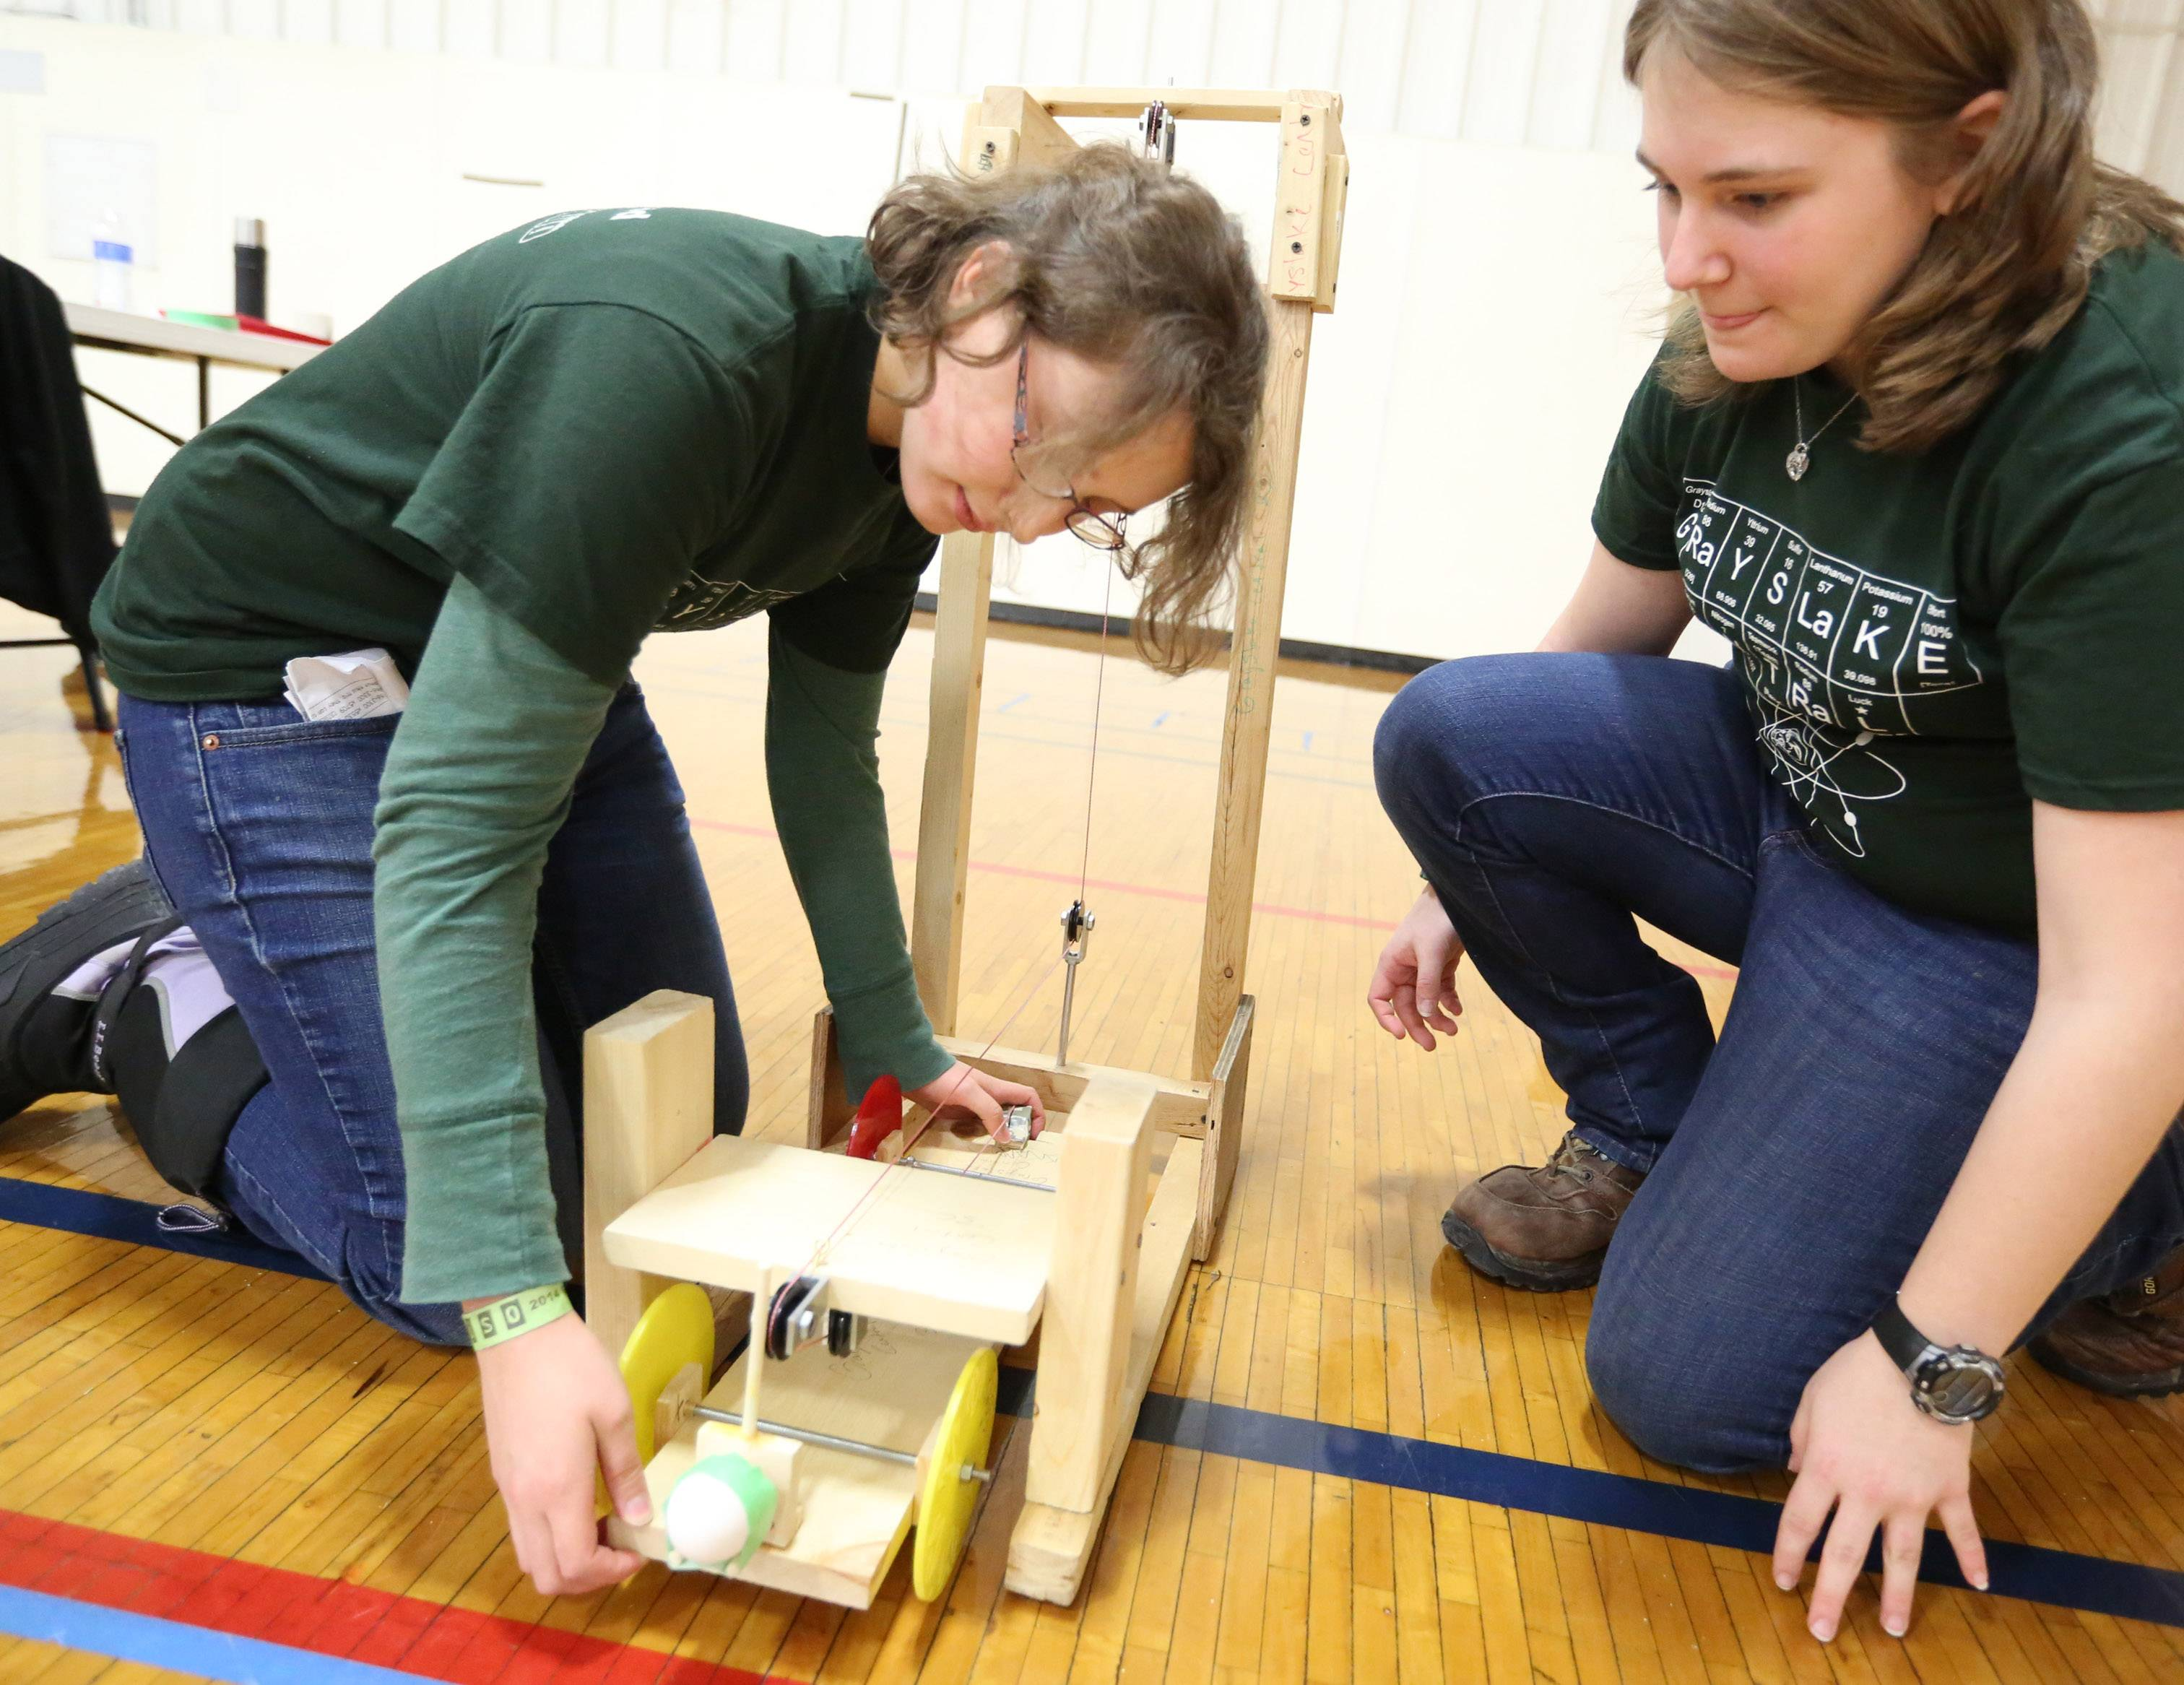 Grayslake Central High School students Kayla Penkava and Jaclyn Farm prepare their scrambler egg car for take off during the Grayslake Regional Science Olympiad on Saturday at College of Lake County. About 900 middle and high school students participated.